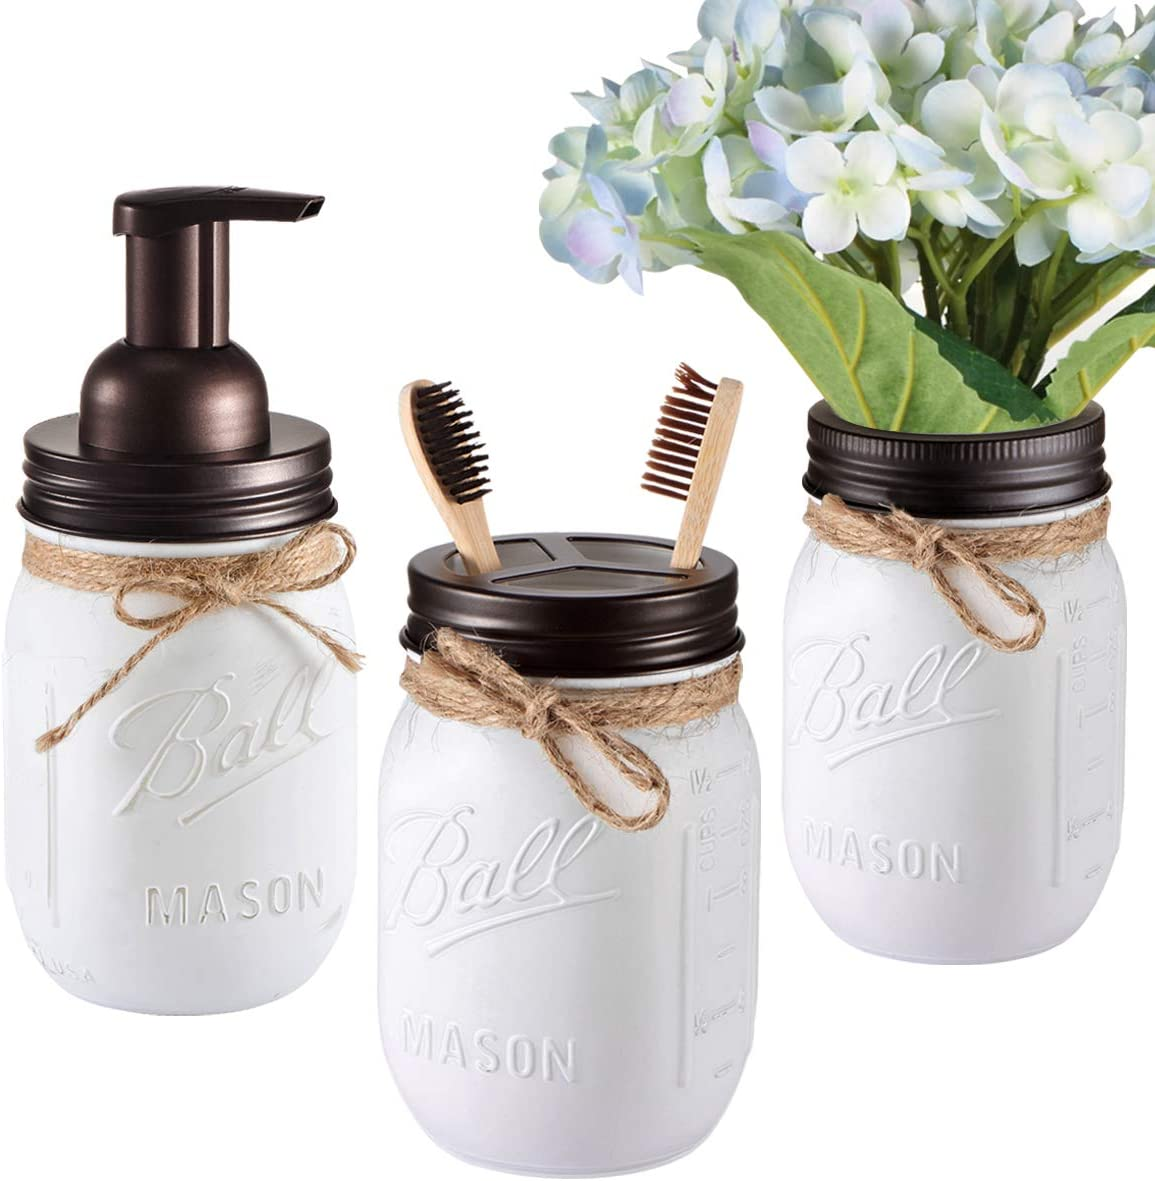 Mason Jar Bathroom Set(3 Piece)-Foaming Soap Dispenser, Toothbrush Holder,Flower Vase,for Wedding House Decor Countertop and Vanity Organizer Bathroom Kitchen Farmhouse Décor (Bronze)